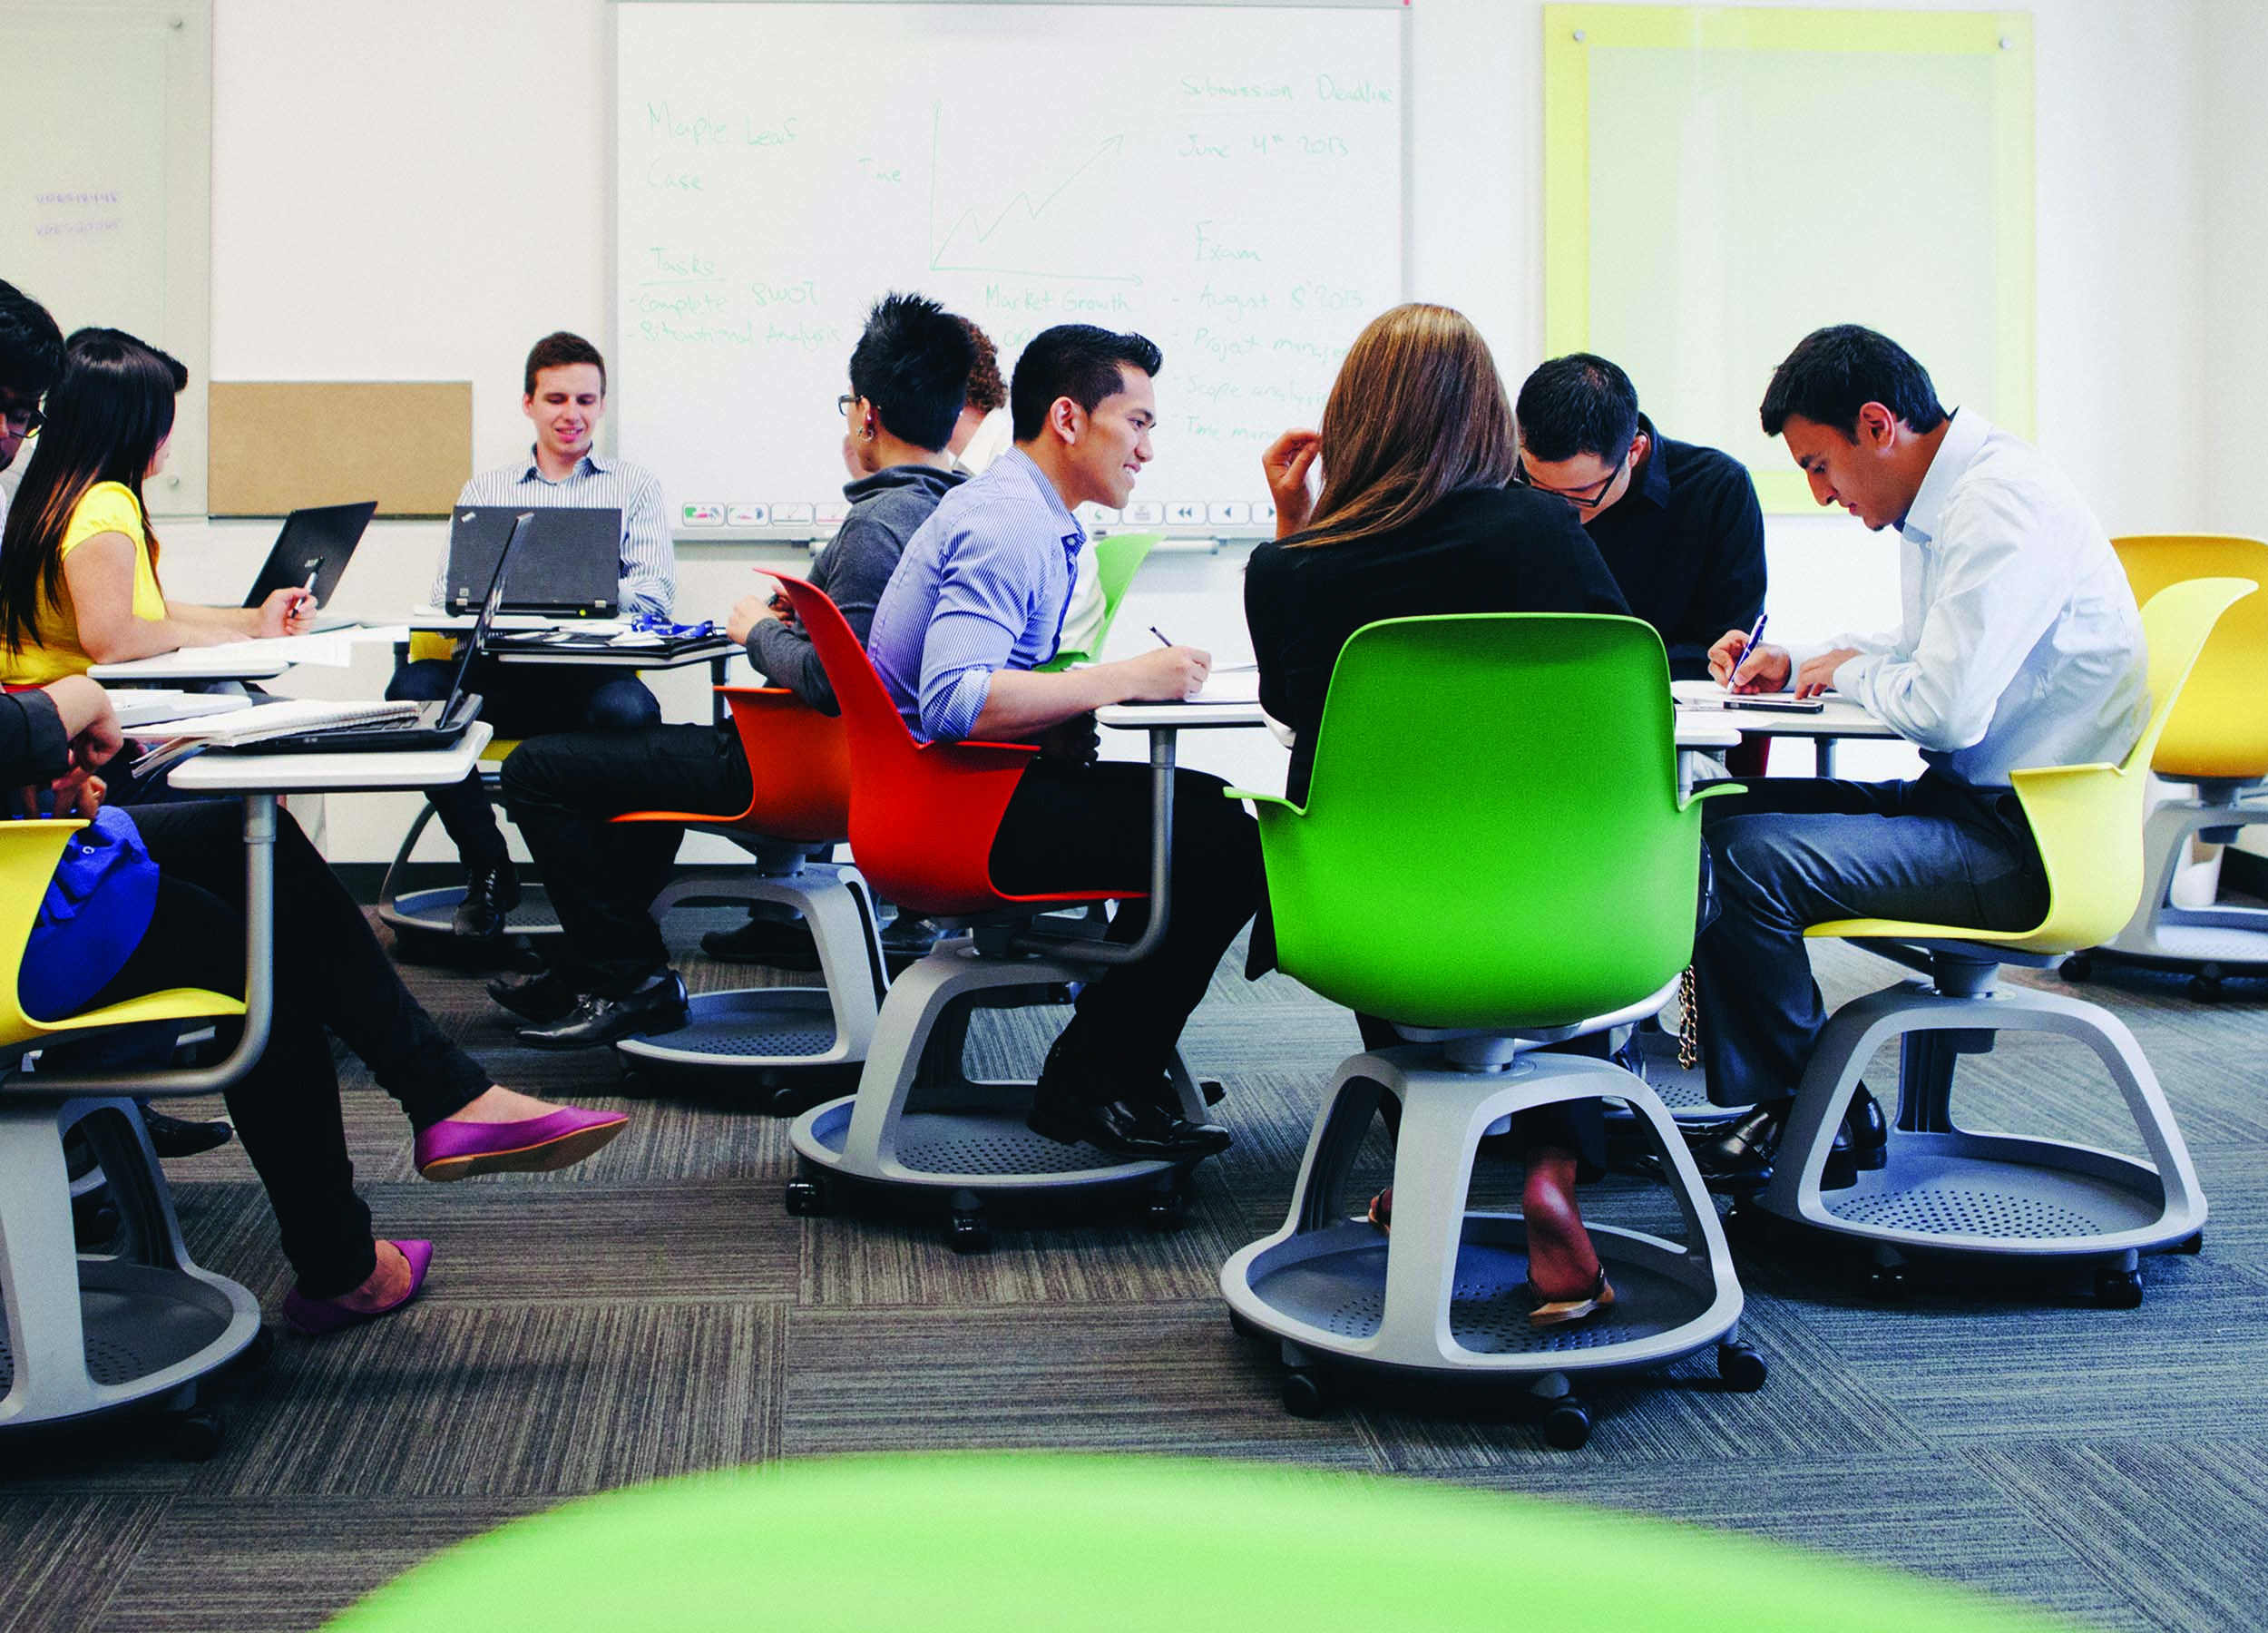 Students sitting in chairs around tables in a classroom